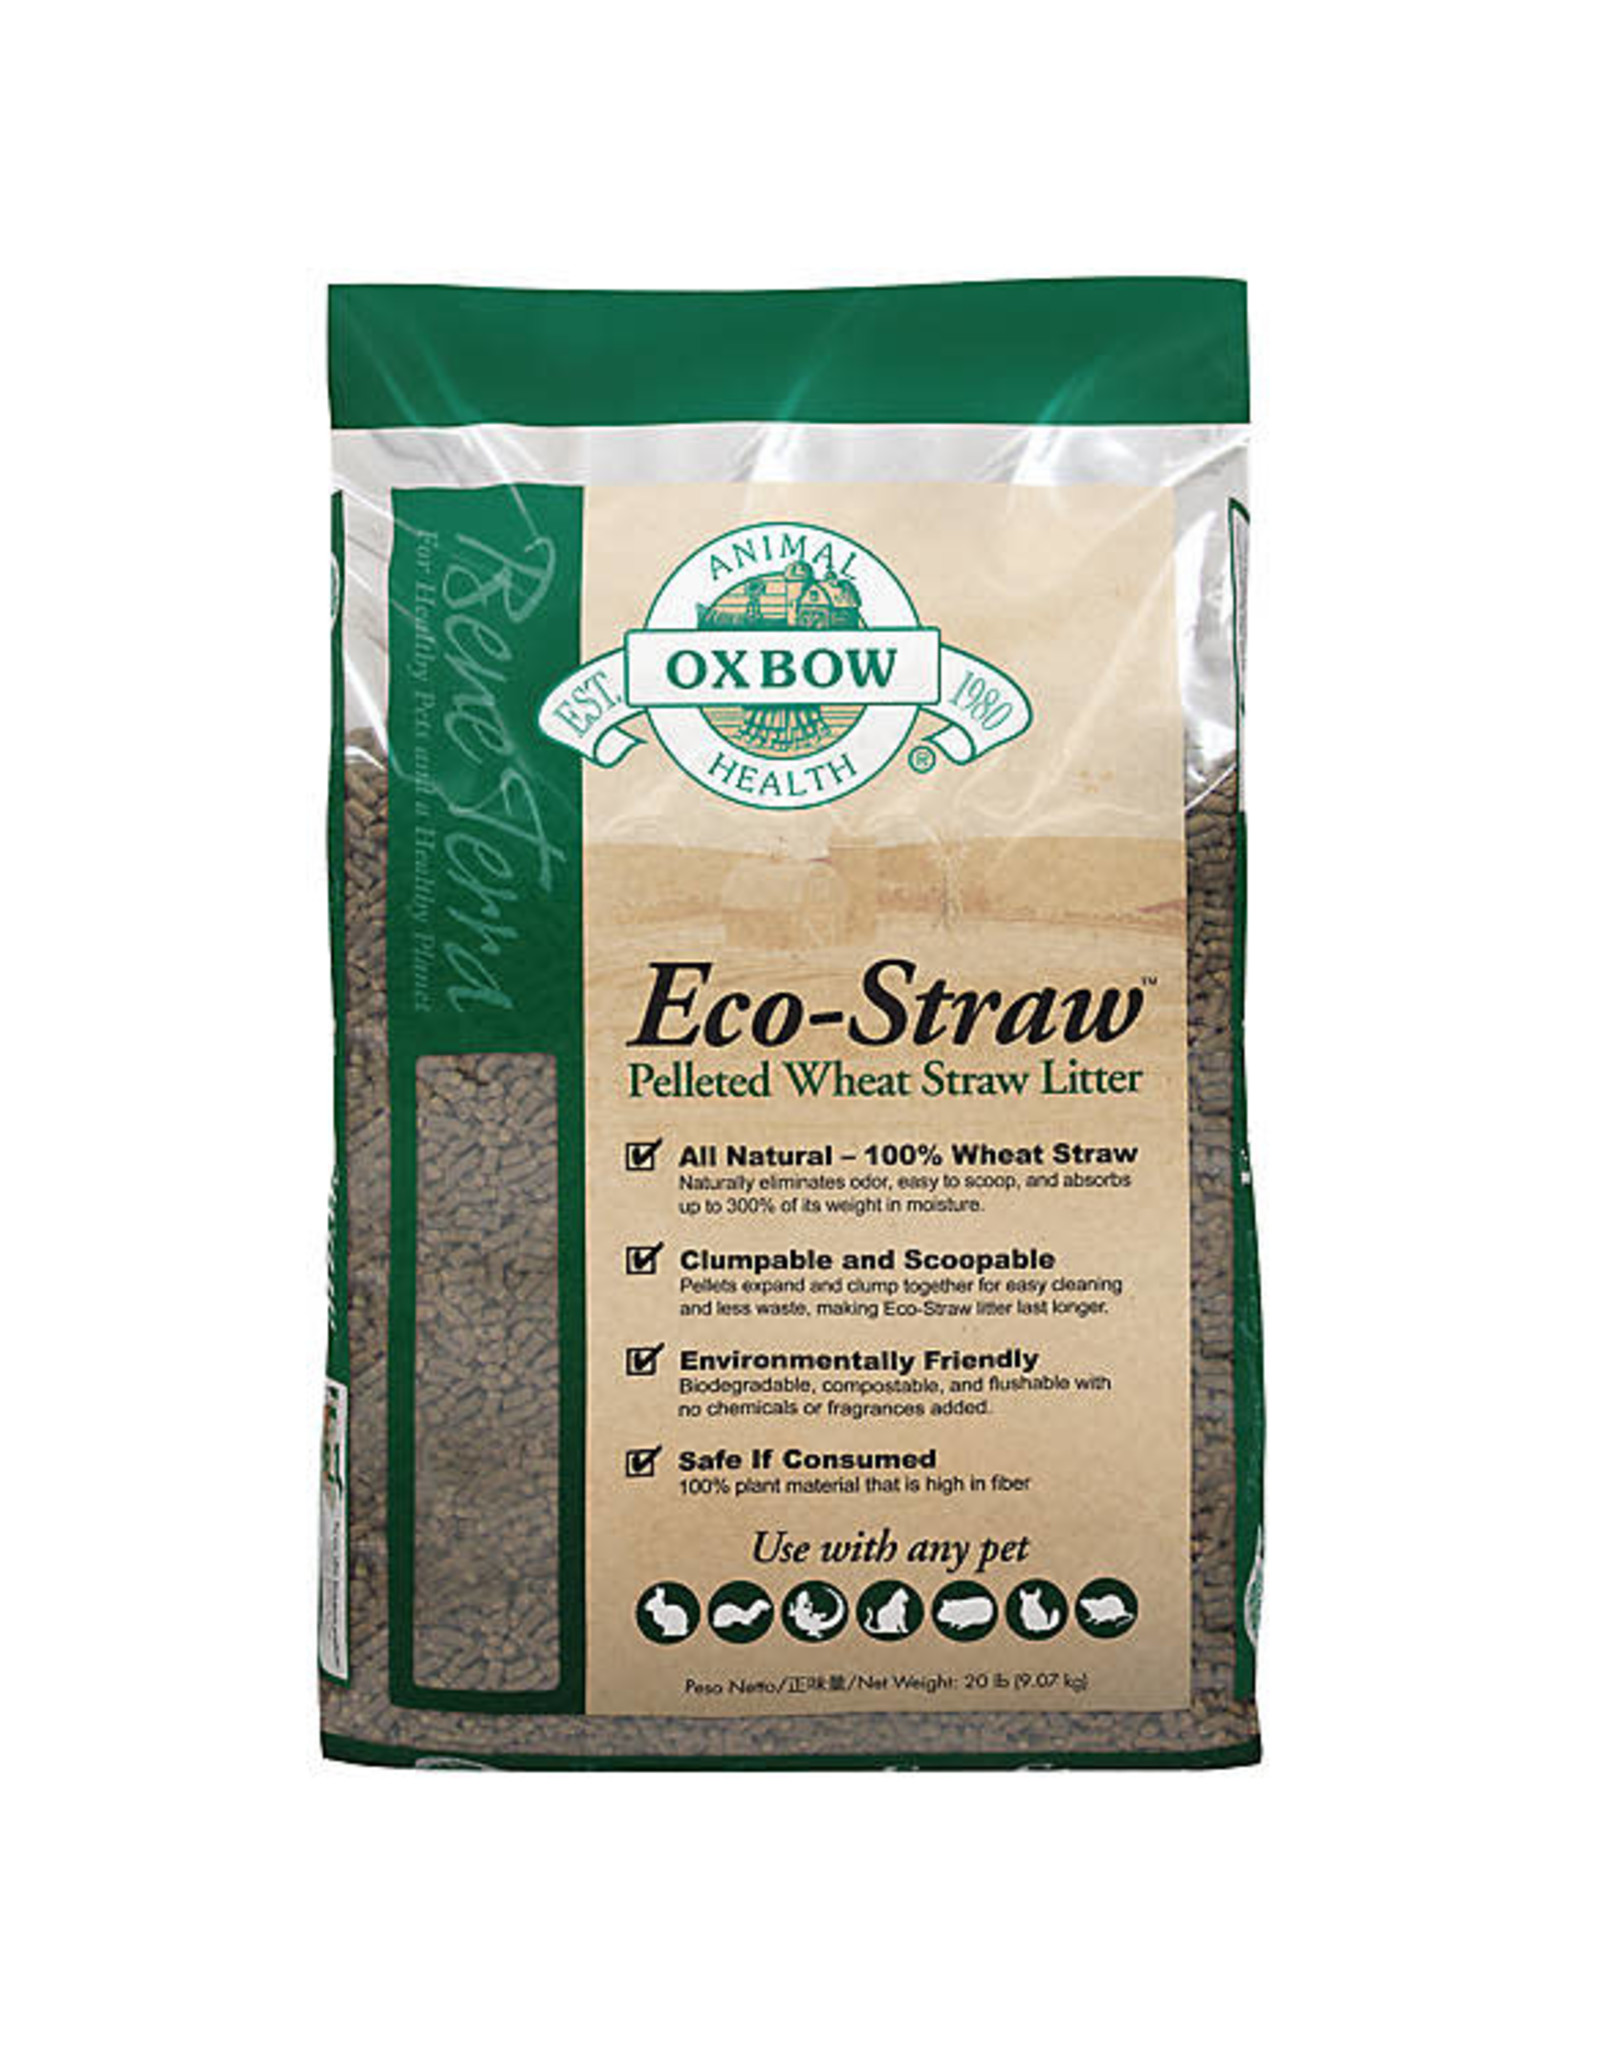 Pet Experts Oxbow Eco Straw Litter 20#